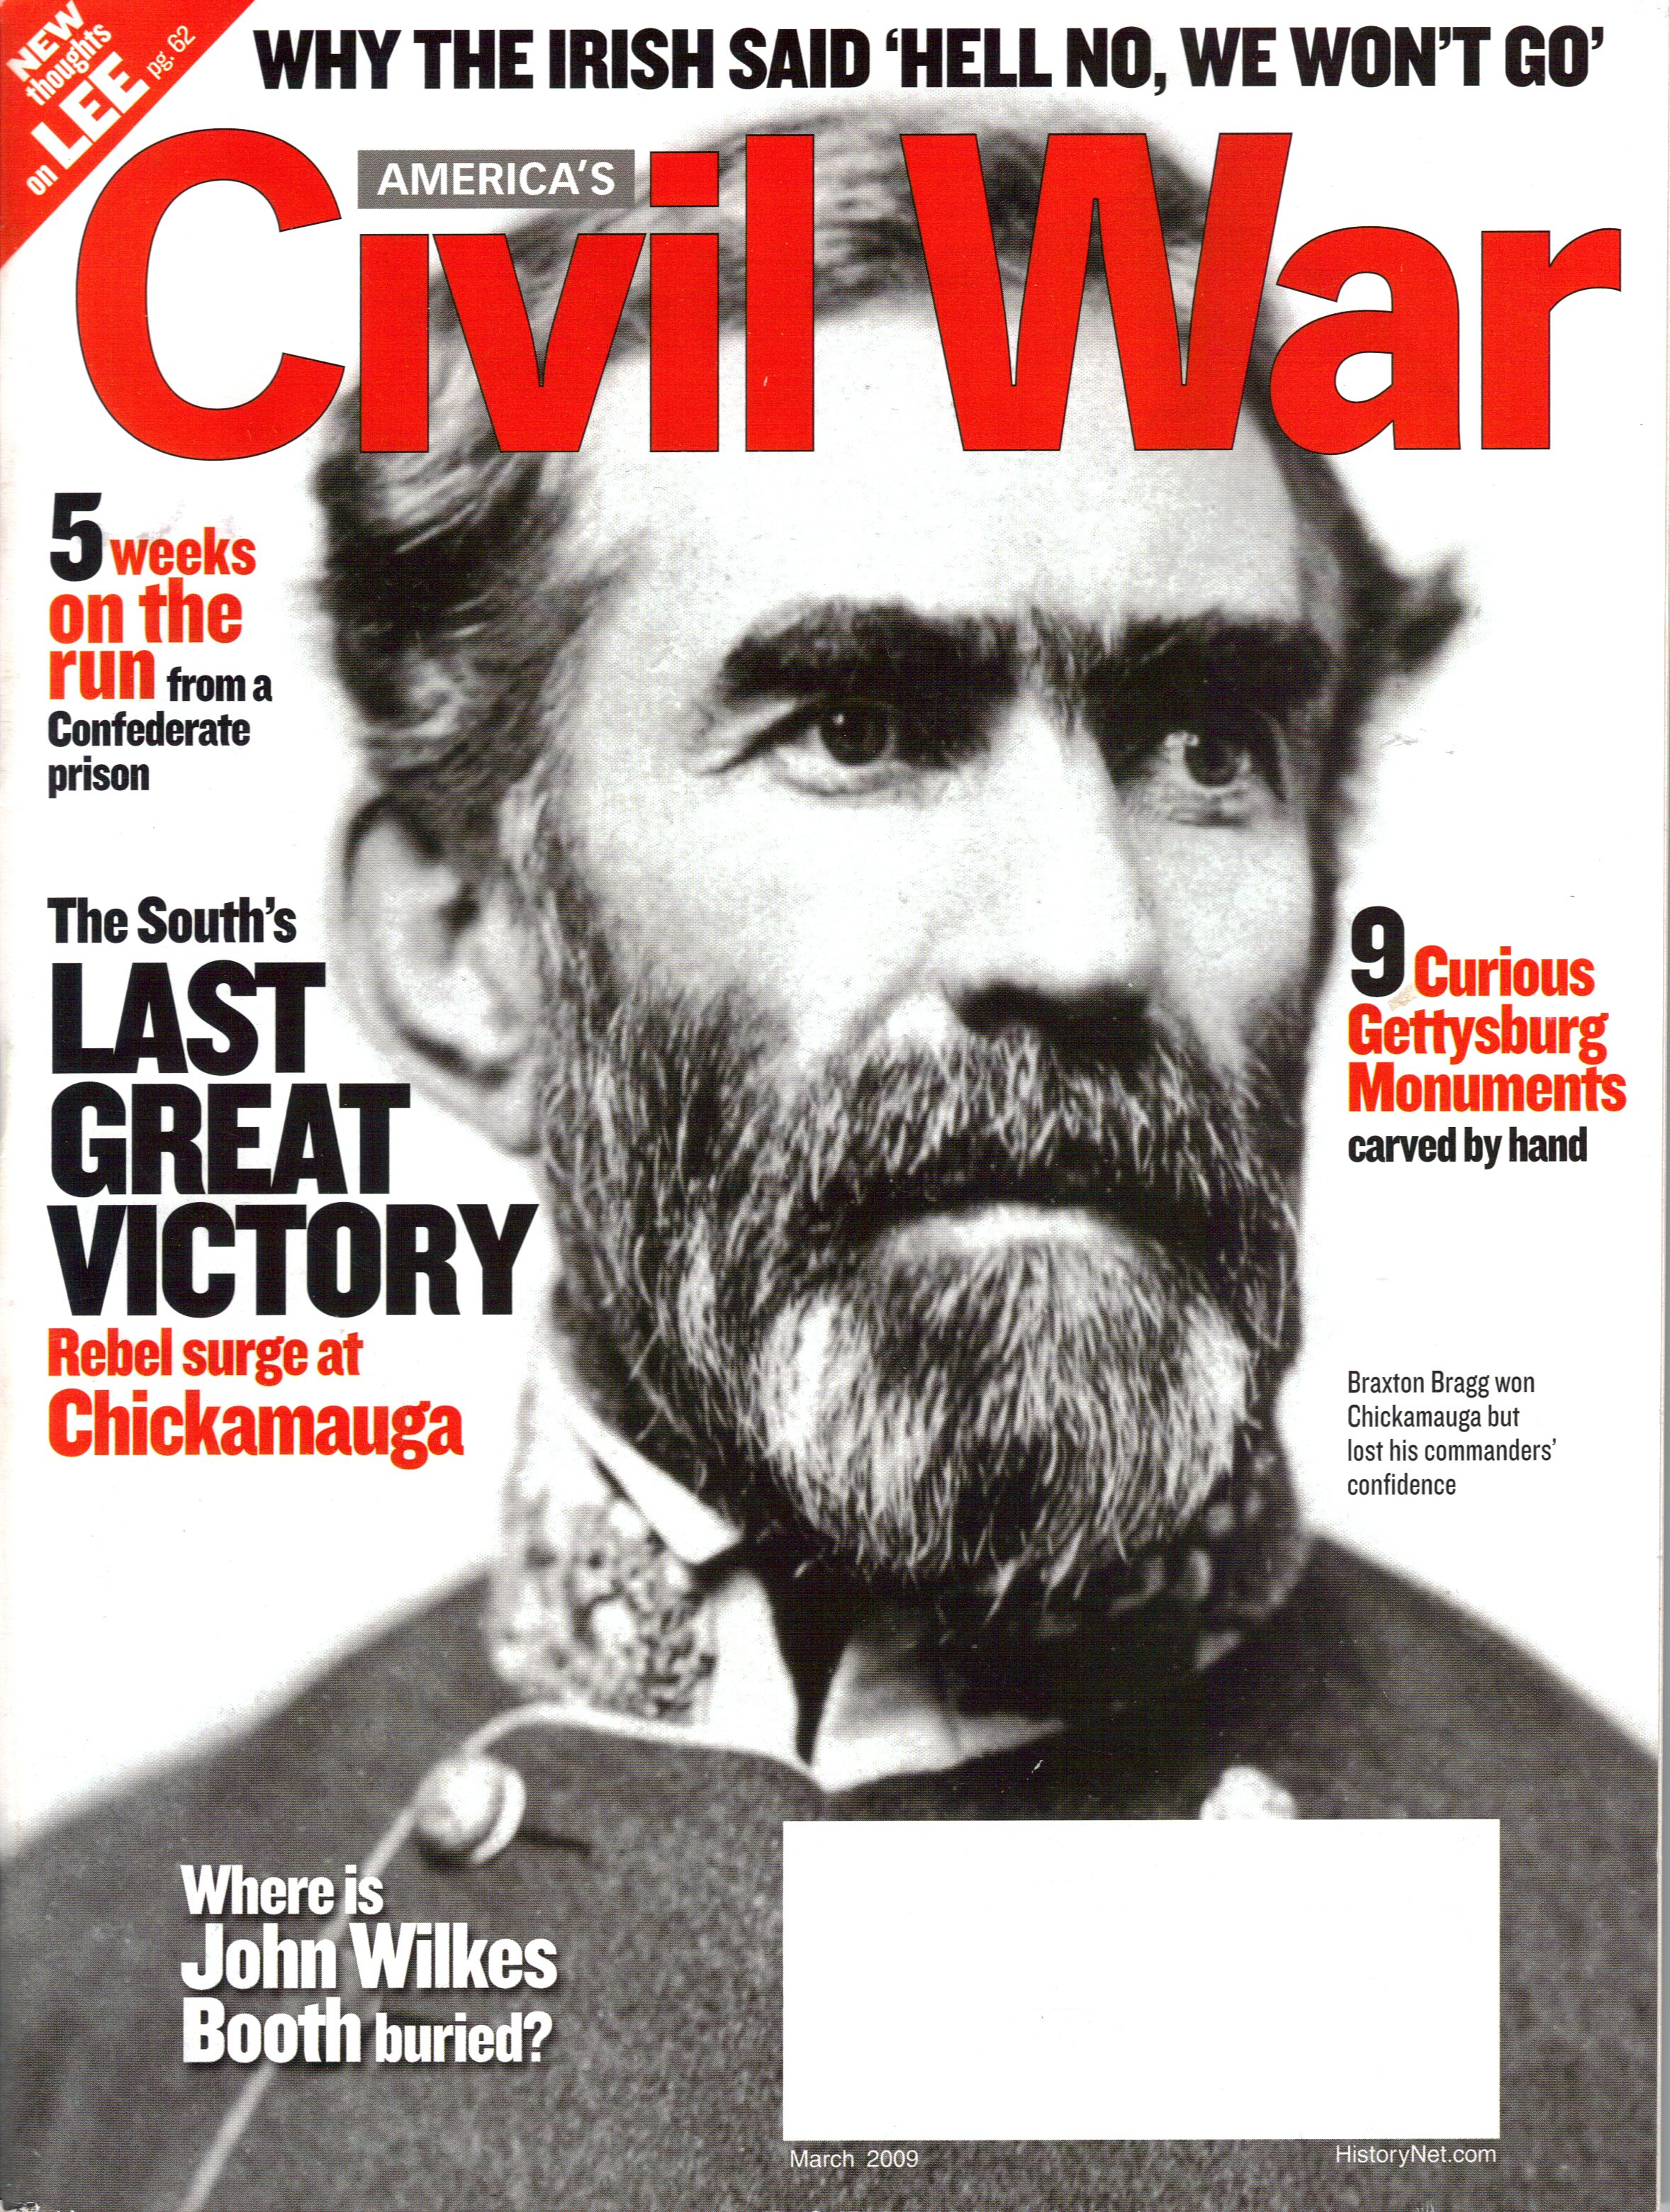 Americas Civil War, Volume 22, Number 1 (March 2009)